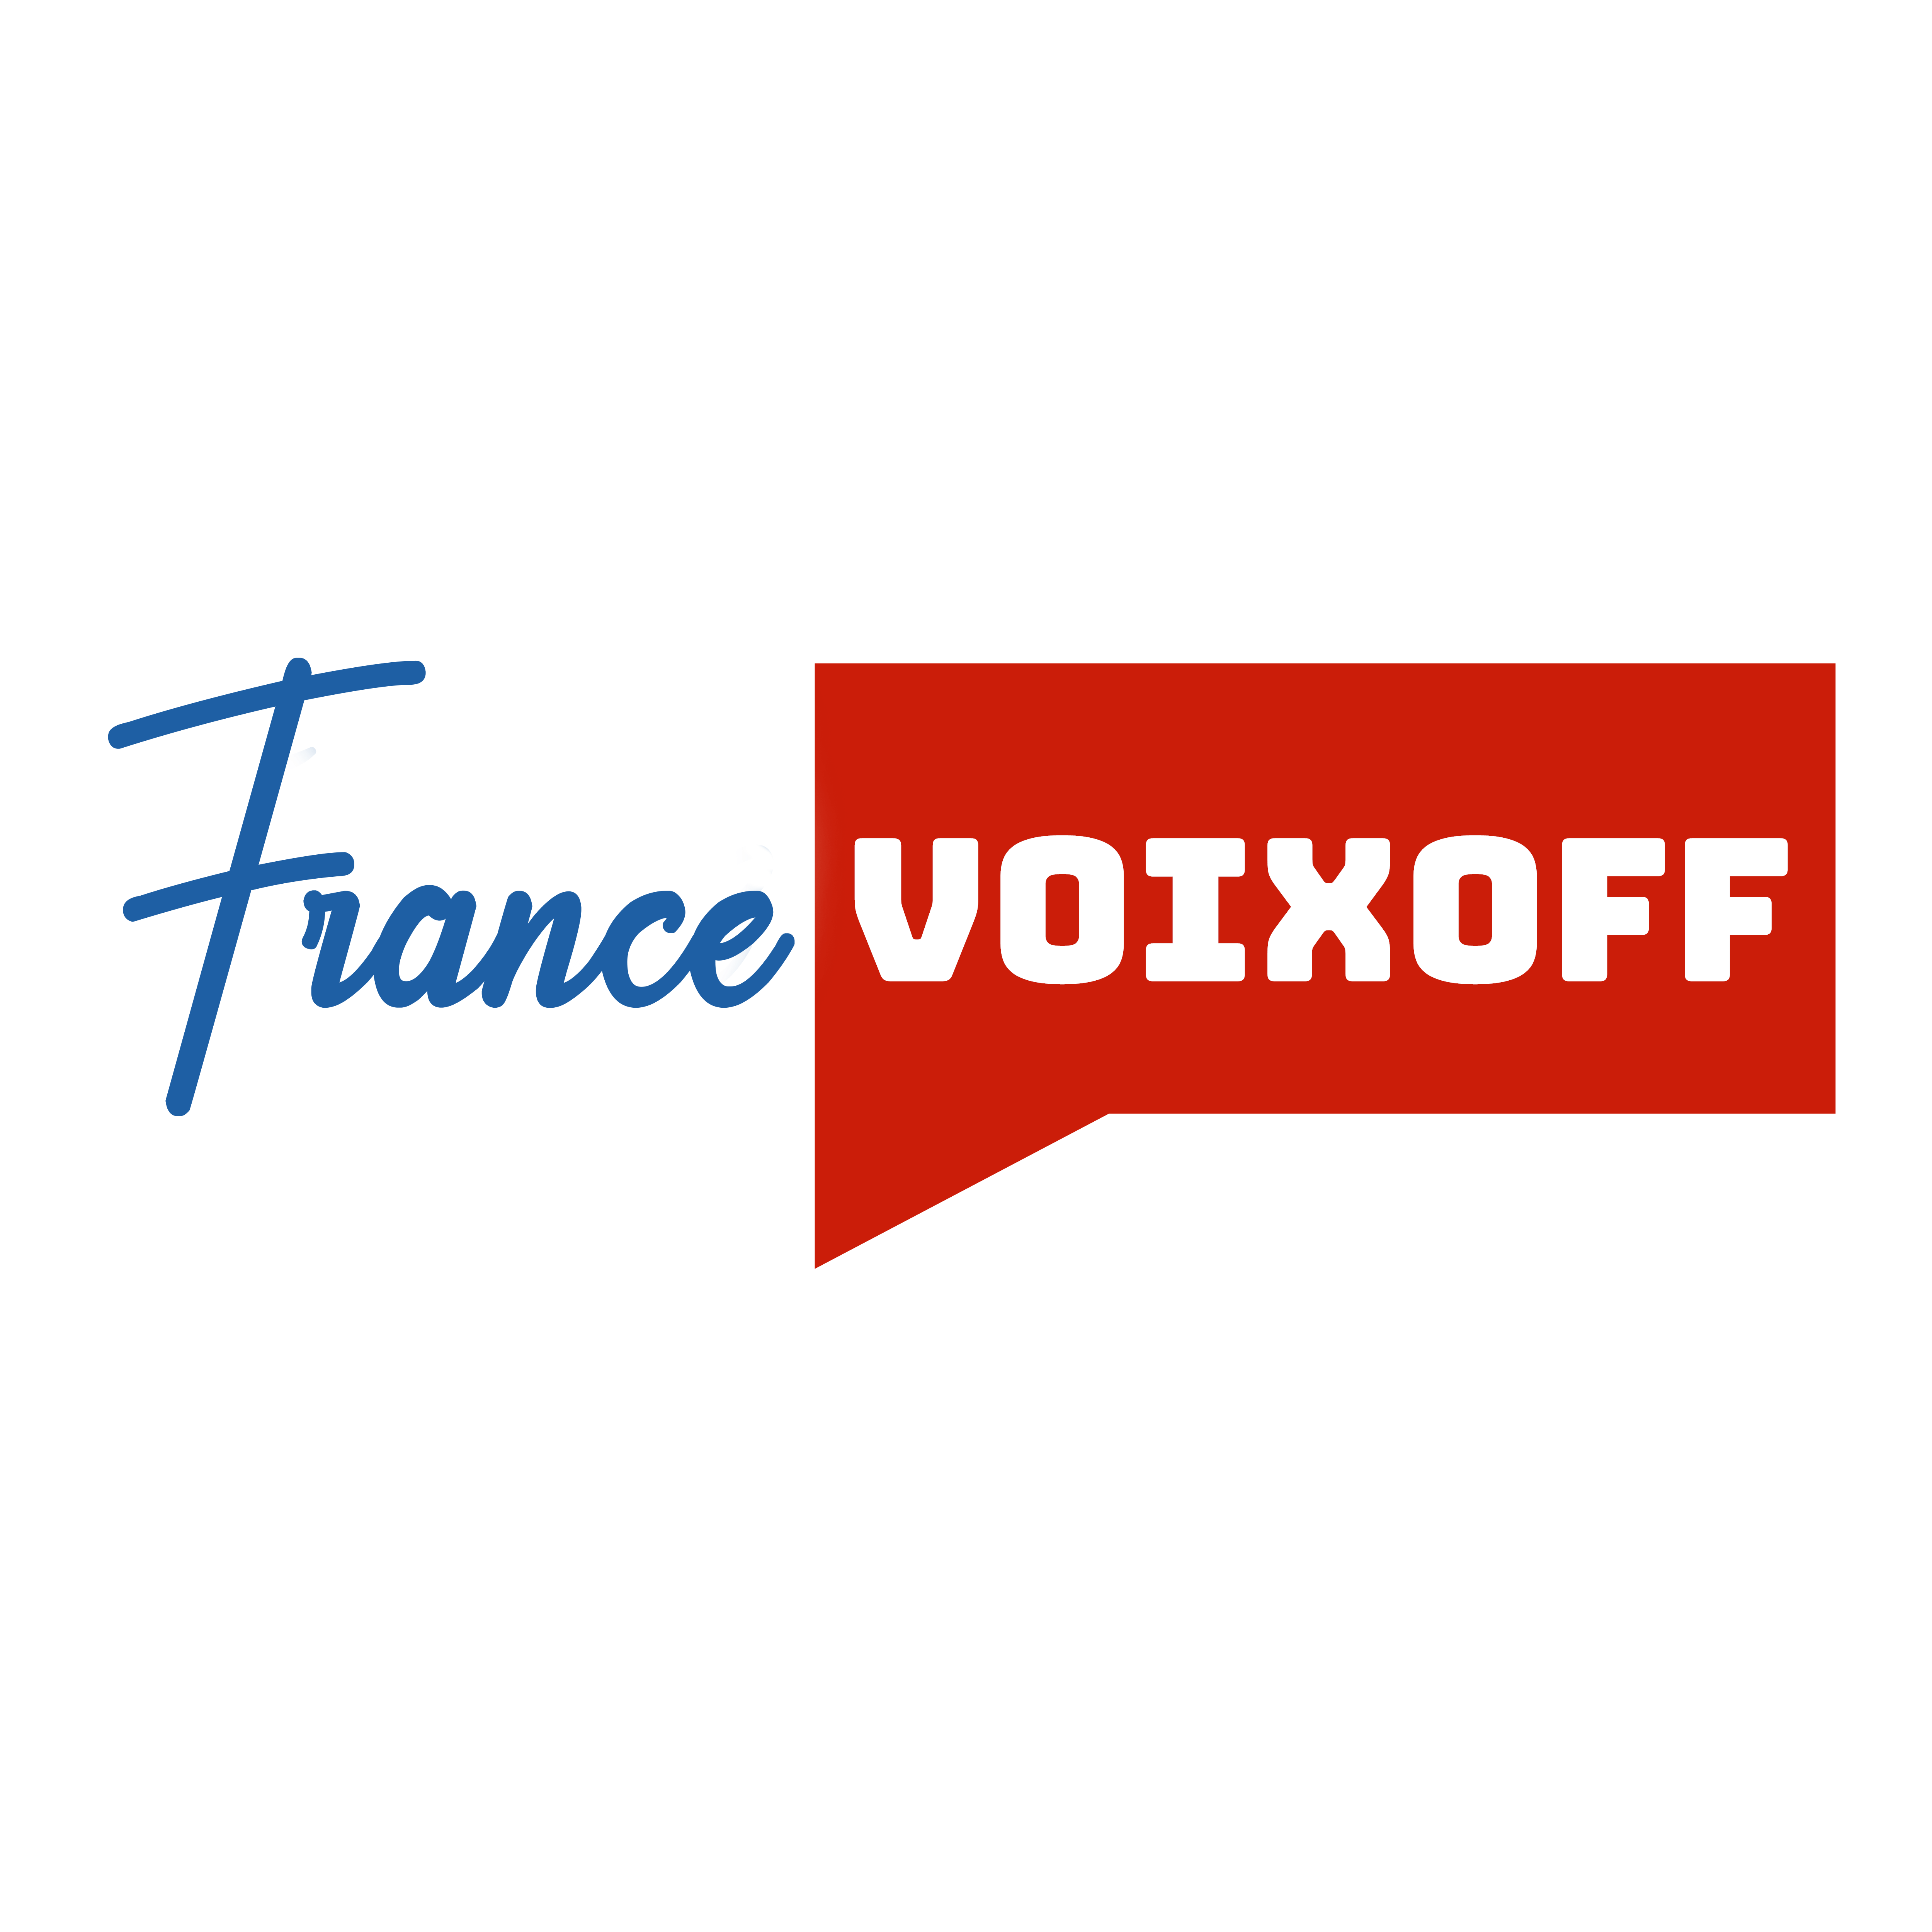 France Voix Off